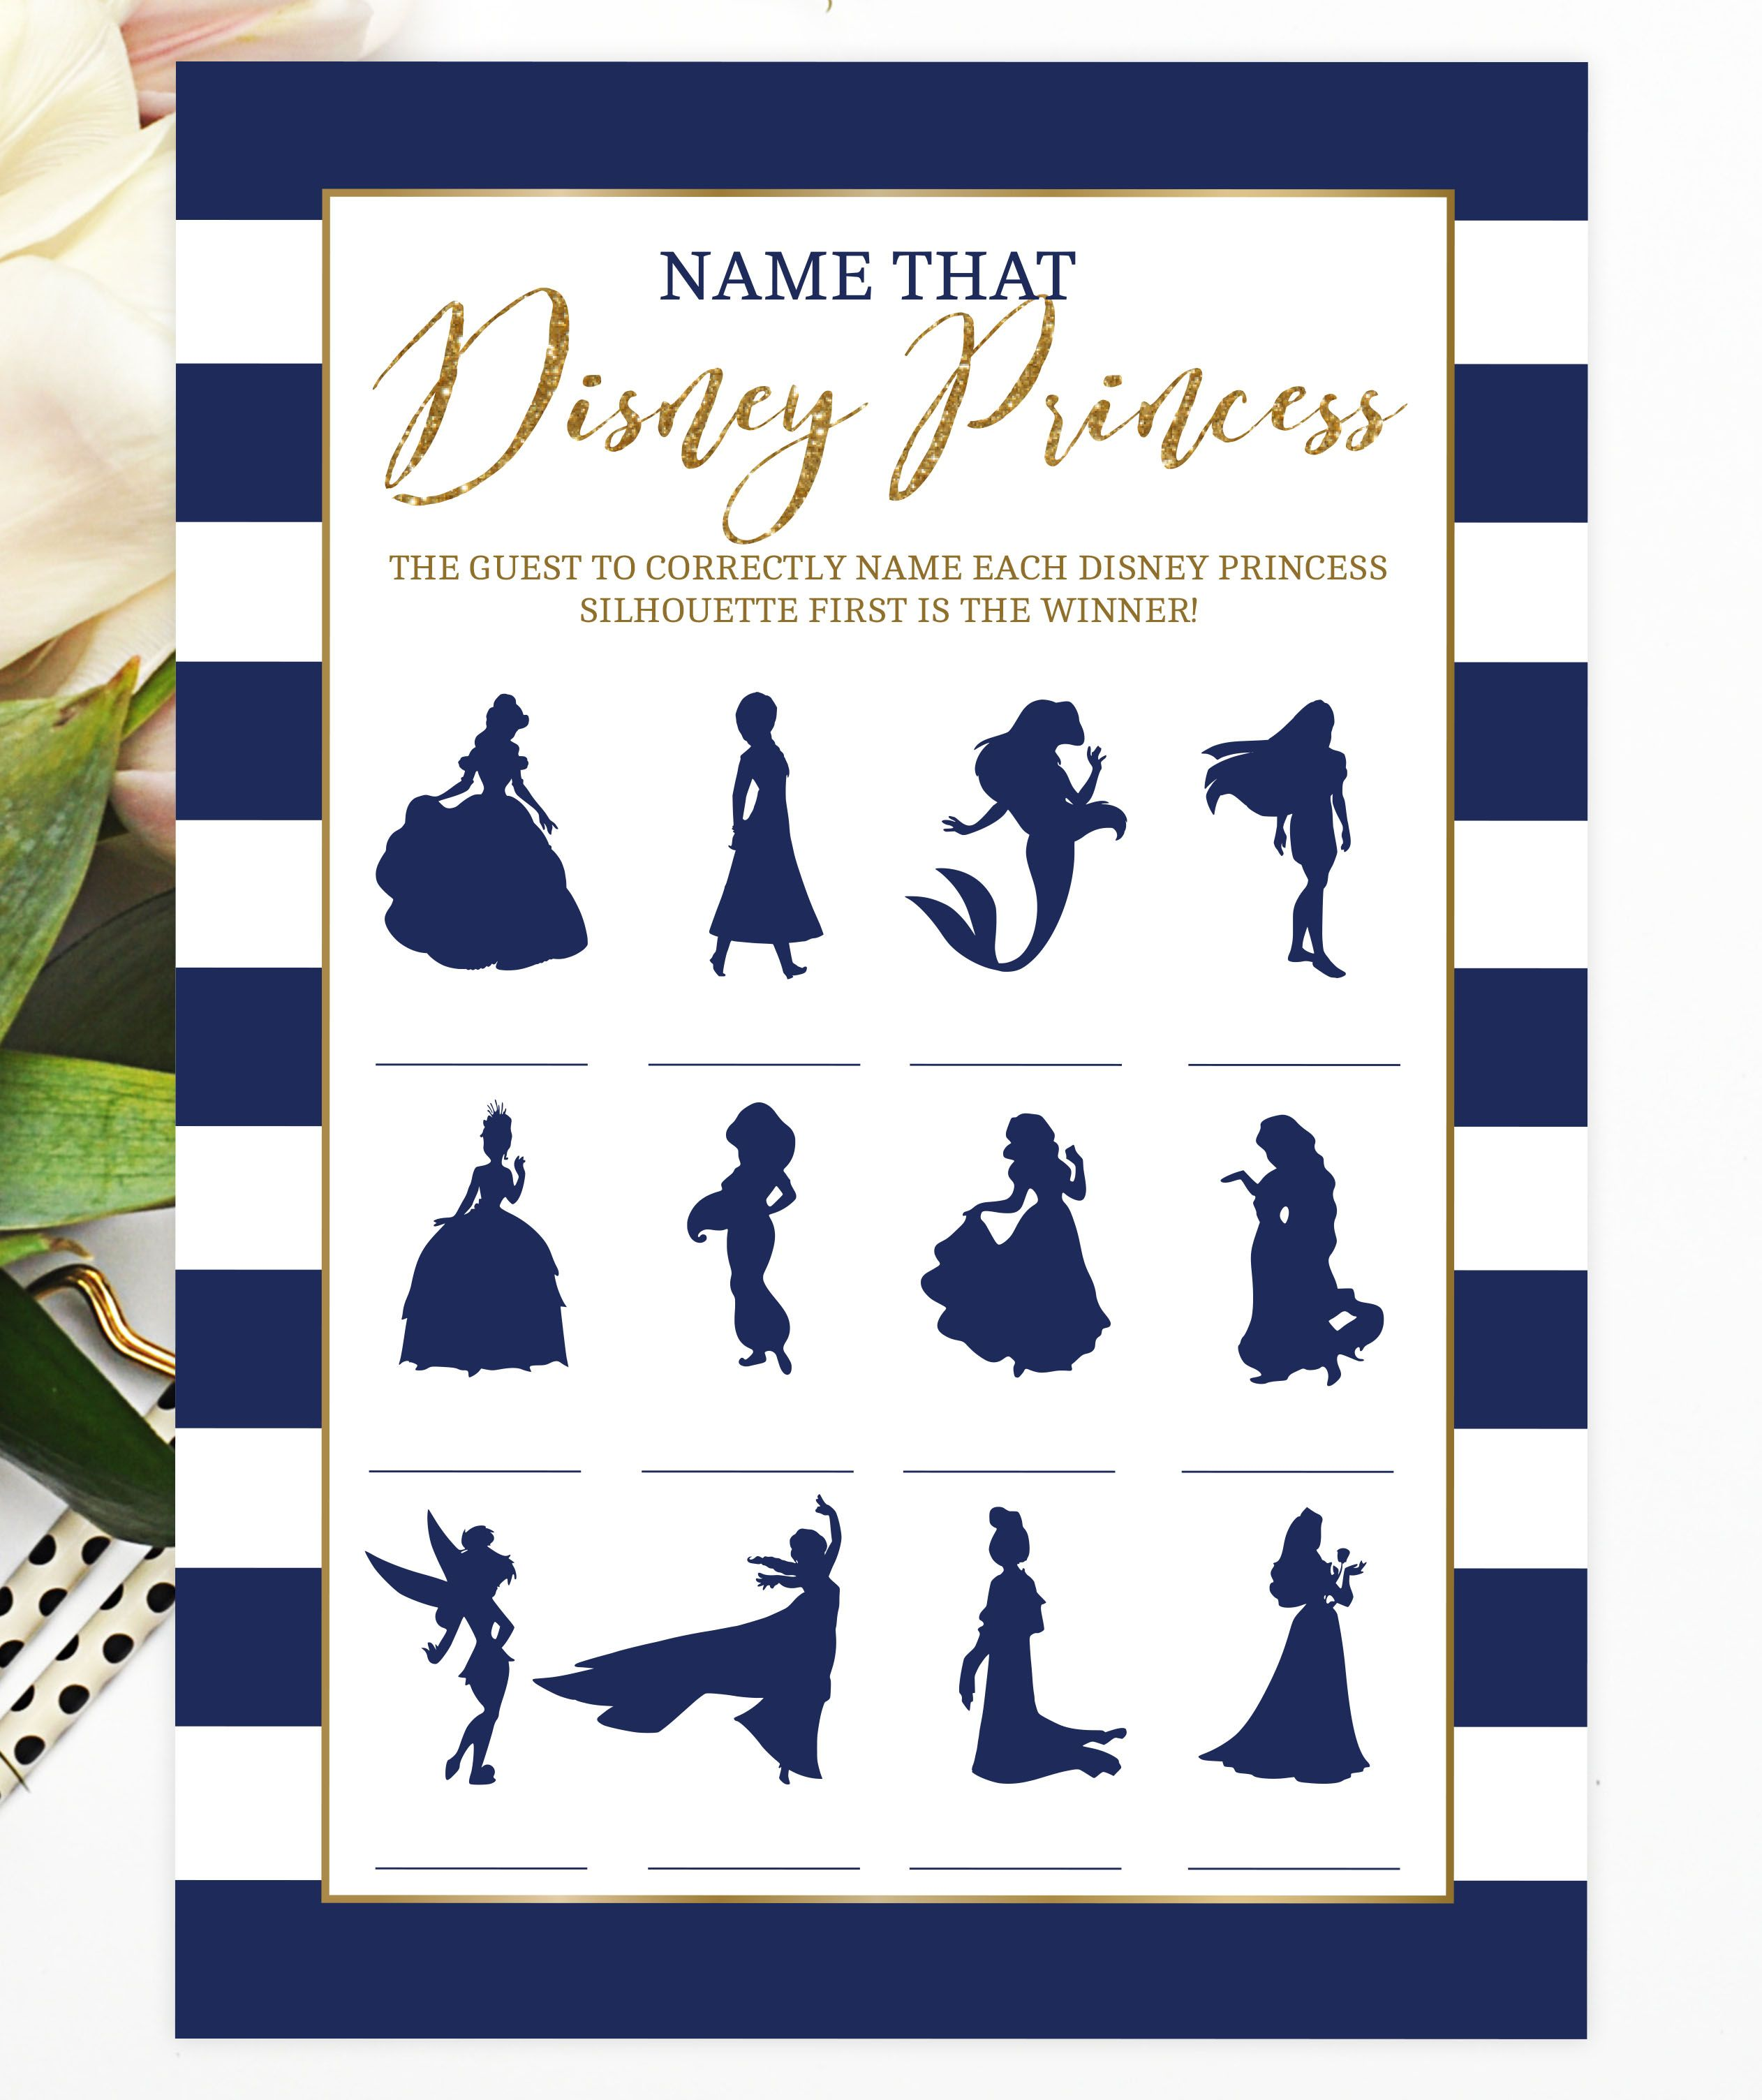 bridal shower bridal shower games bachlorette game disney princess game blue nautical bridal shower ideas navy blue gold hen party disney bridal